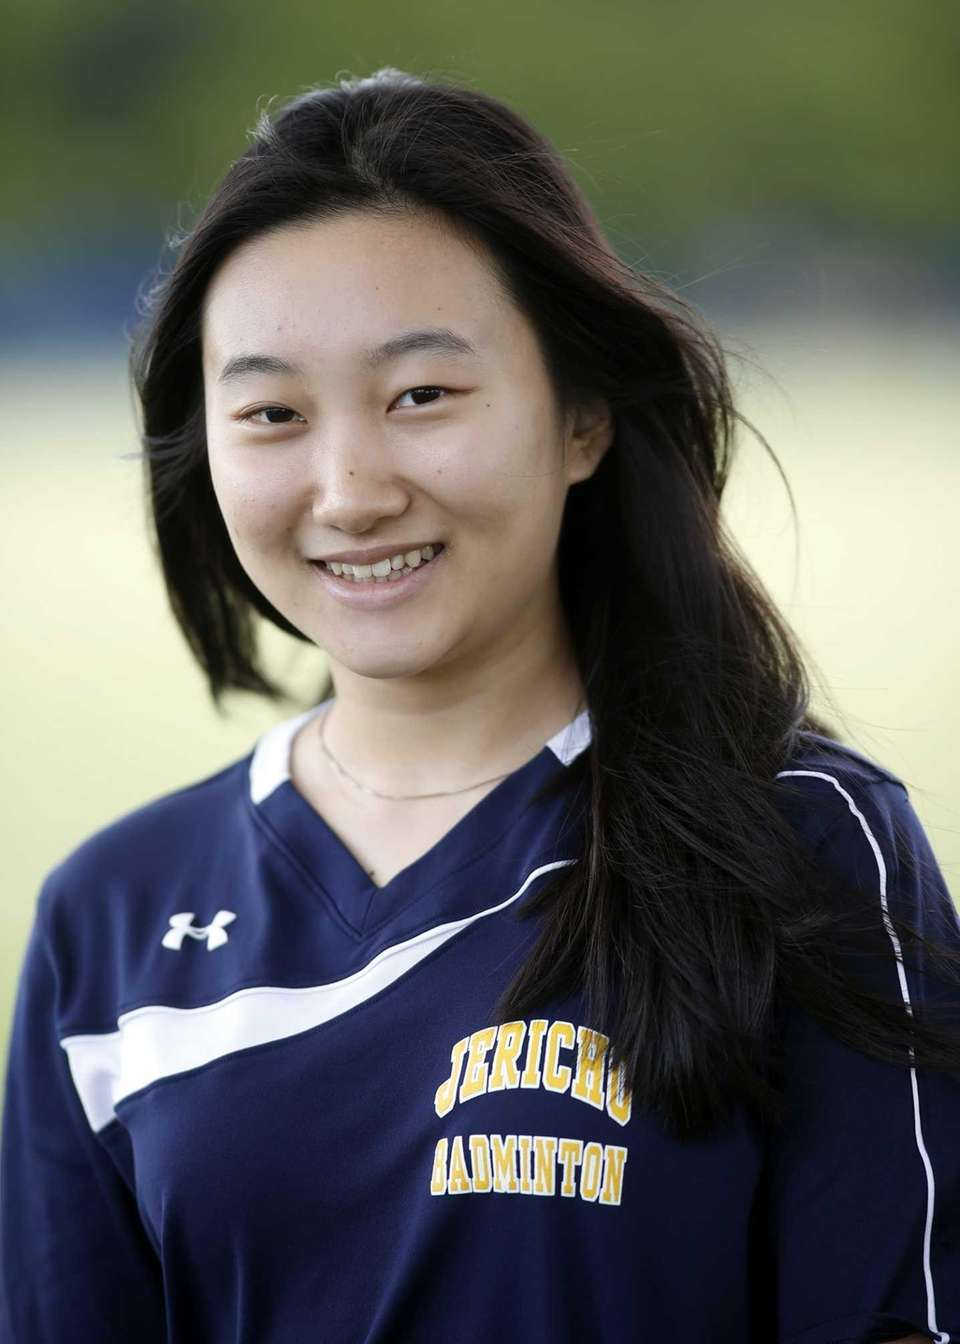 Zhang rallied to beat Great Neck North's Stacy